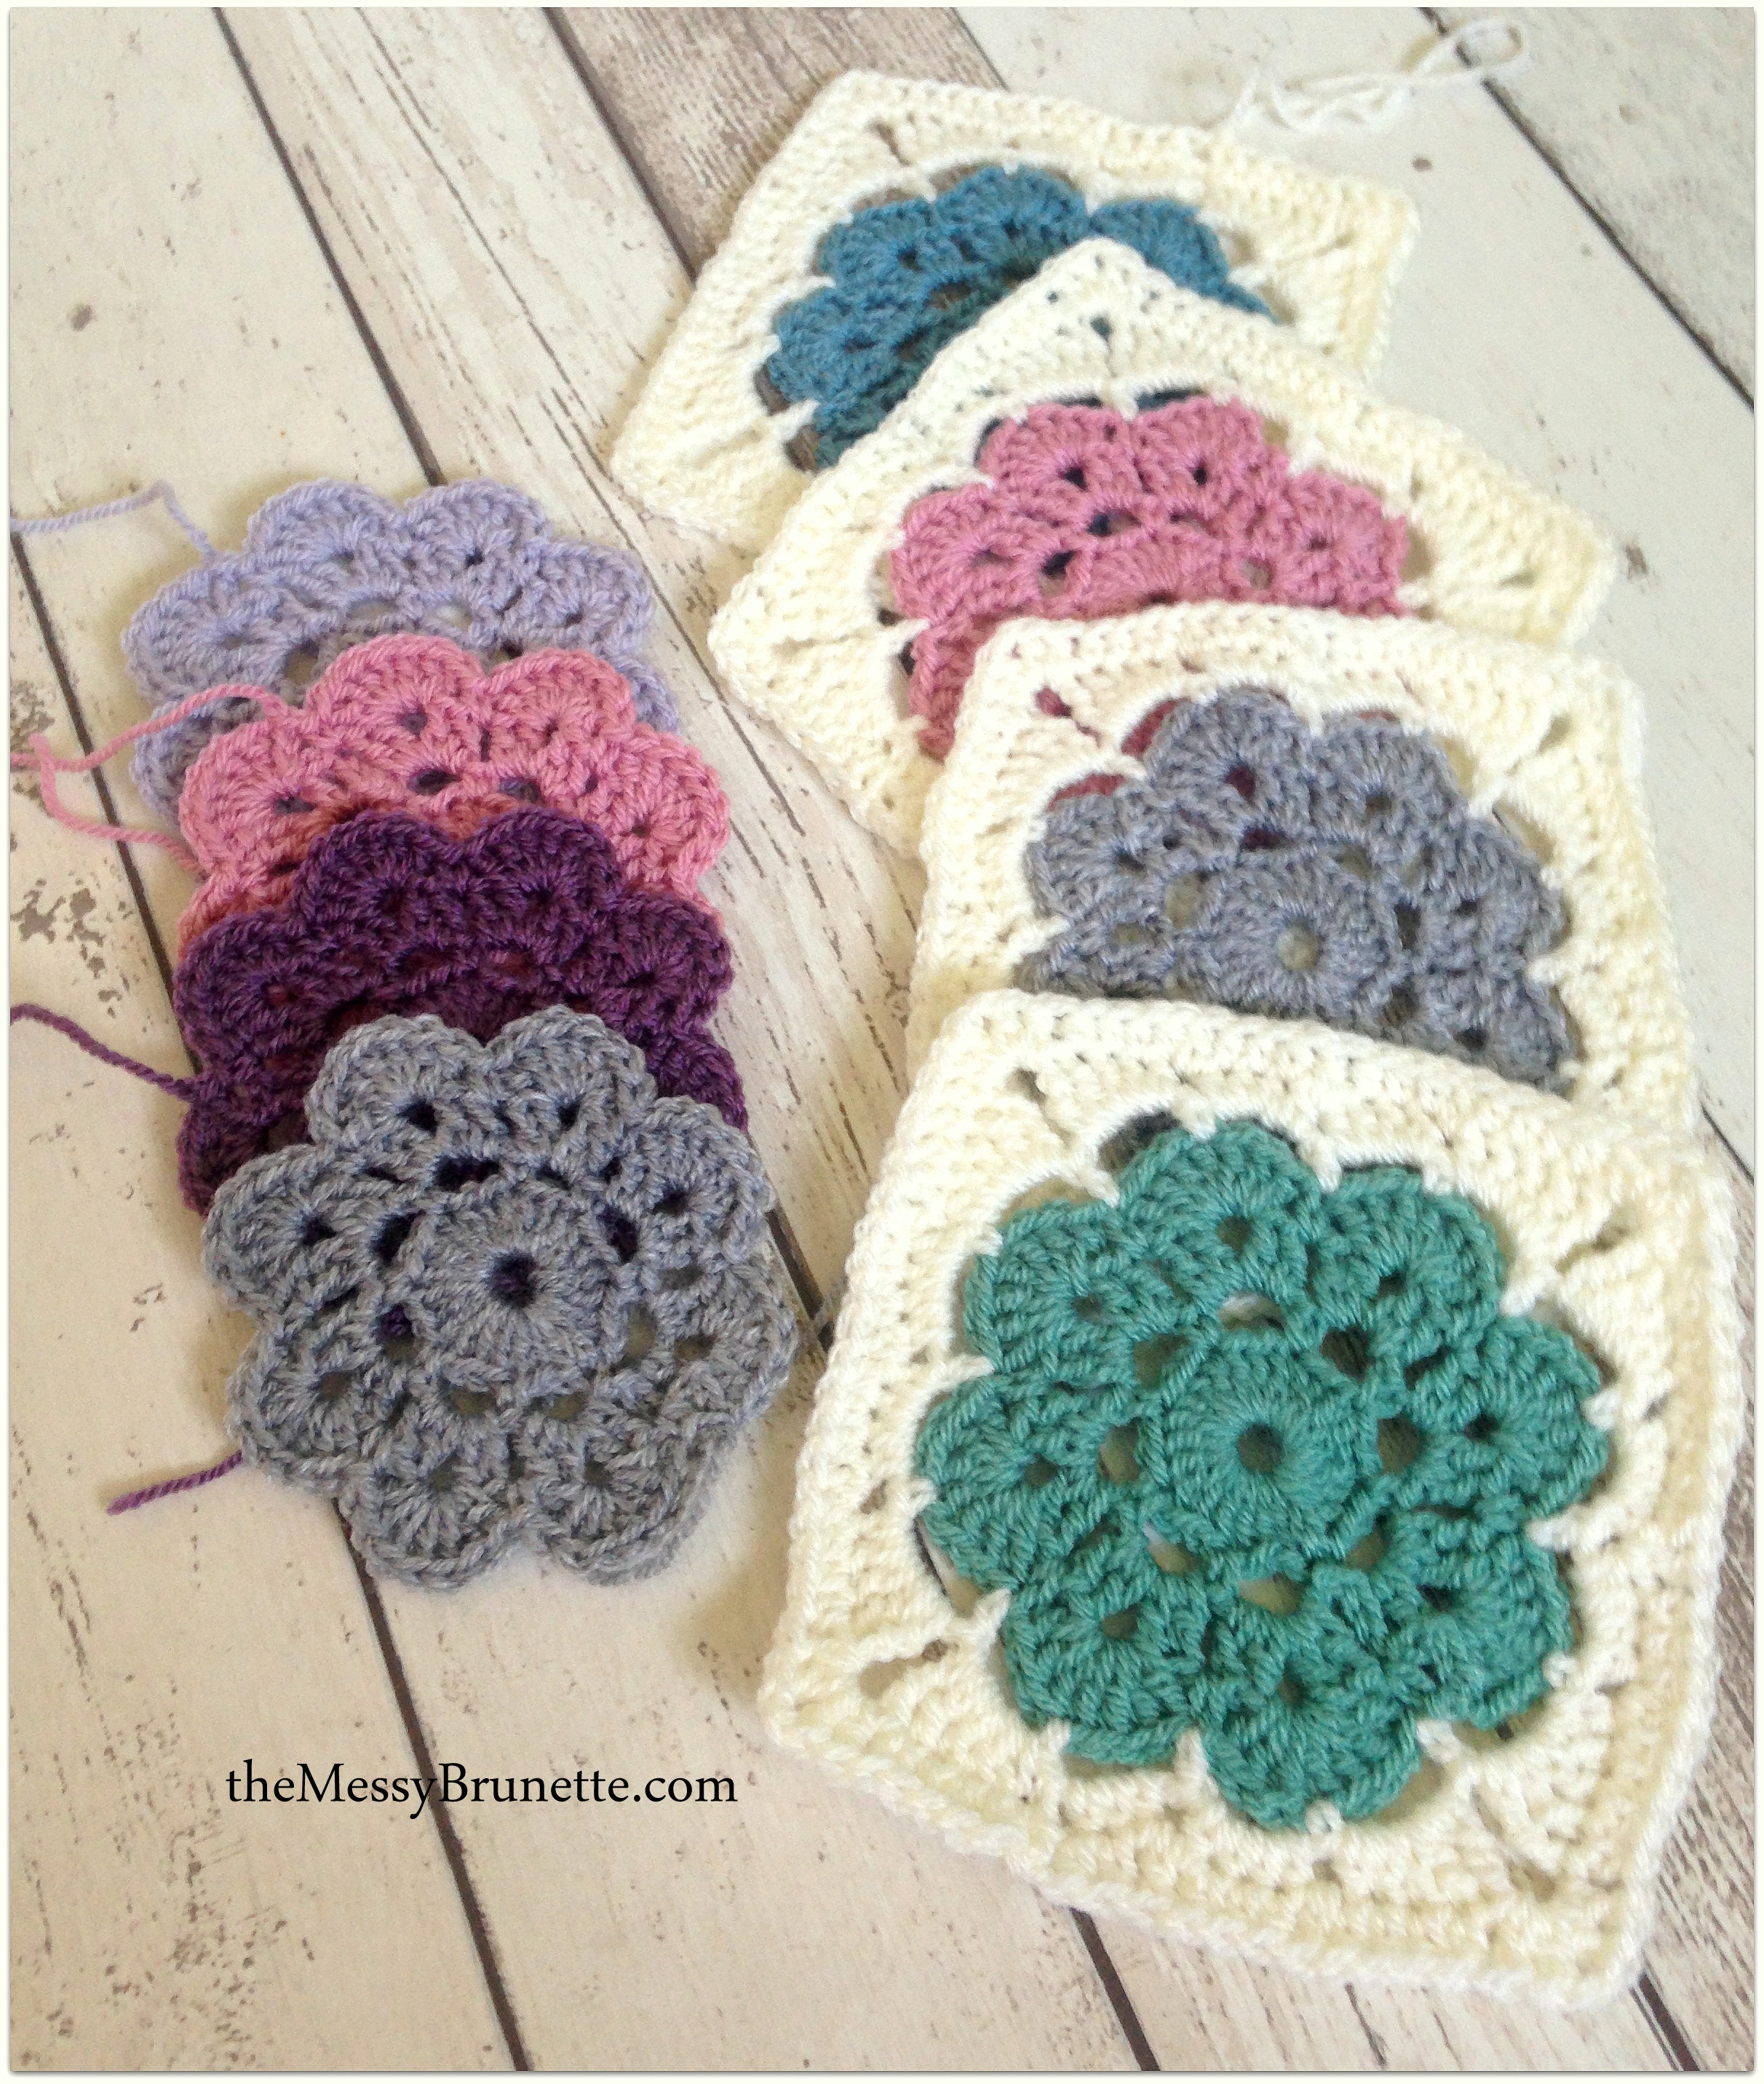 Crochet Squares Awesome Crochet – the Messy Brunette Of Charming 43 Ideas Crochet Squares